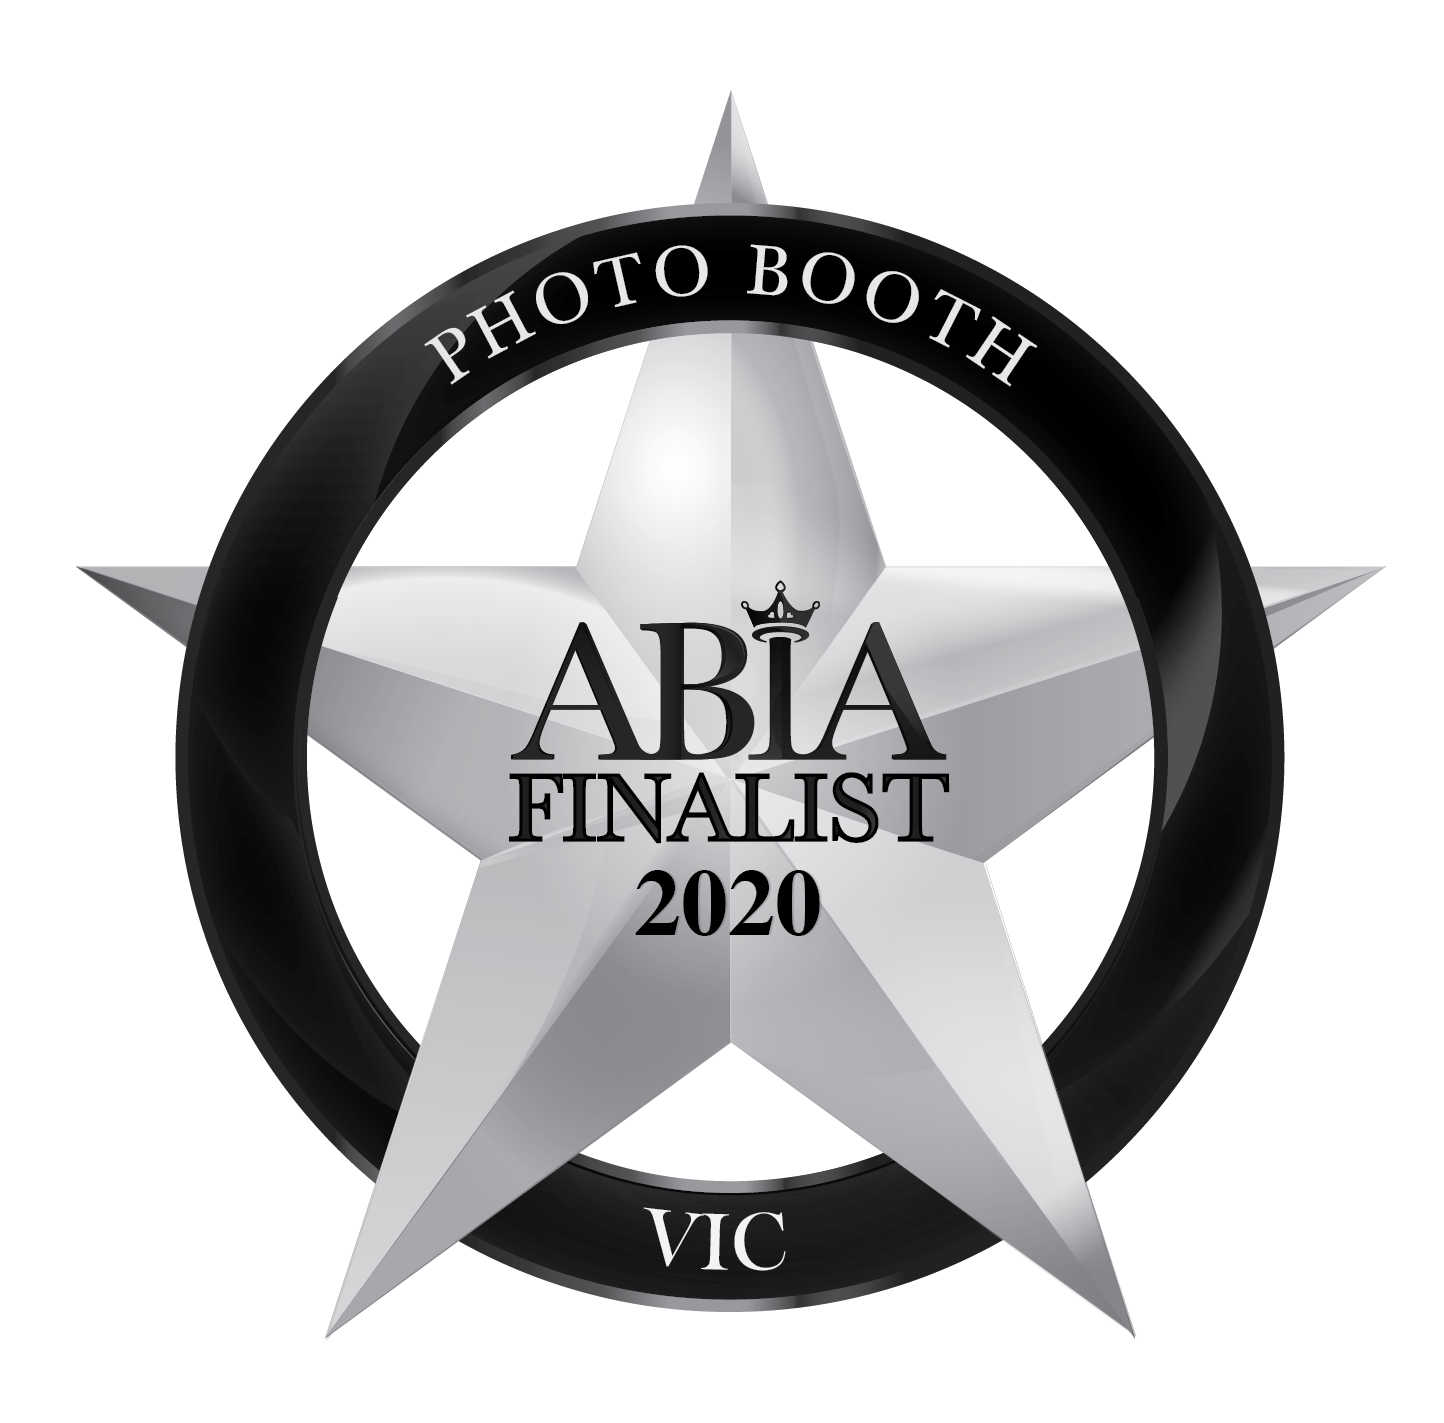 Mirror Photo Booth - ABIA Victoria - Photobooth Finalist 2019